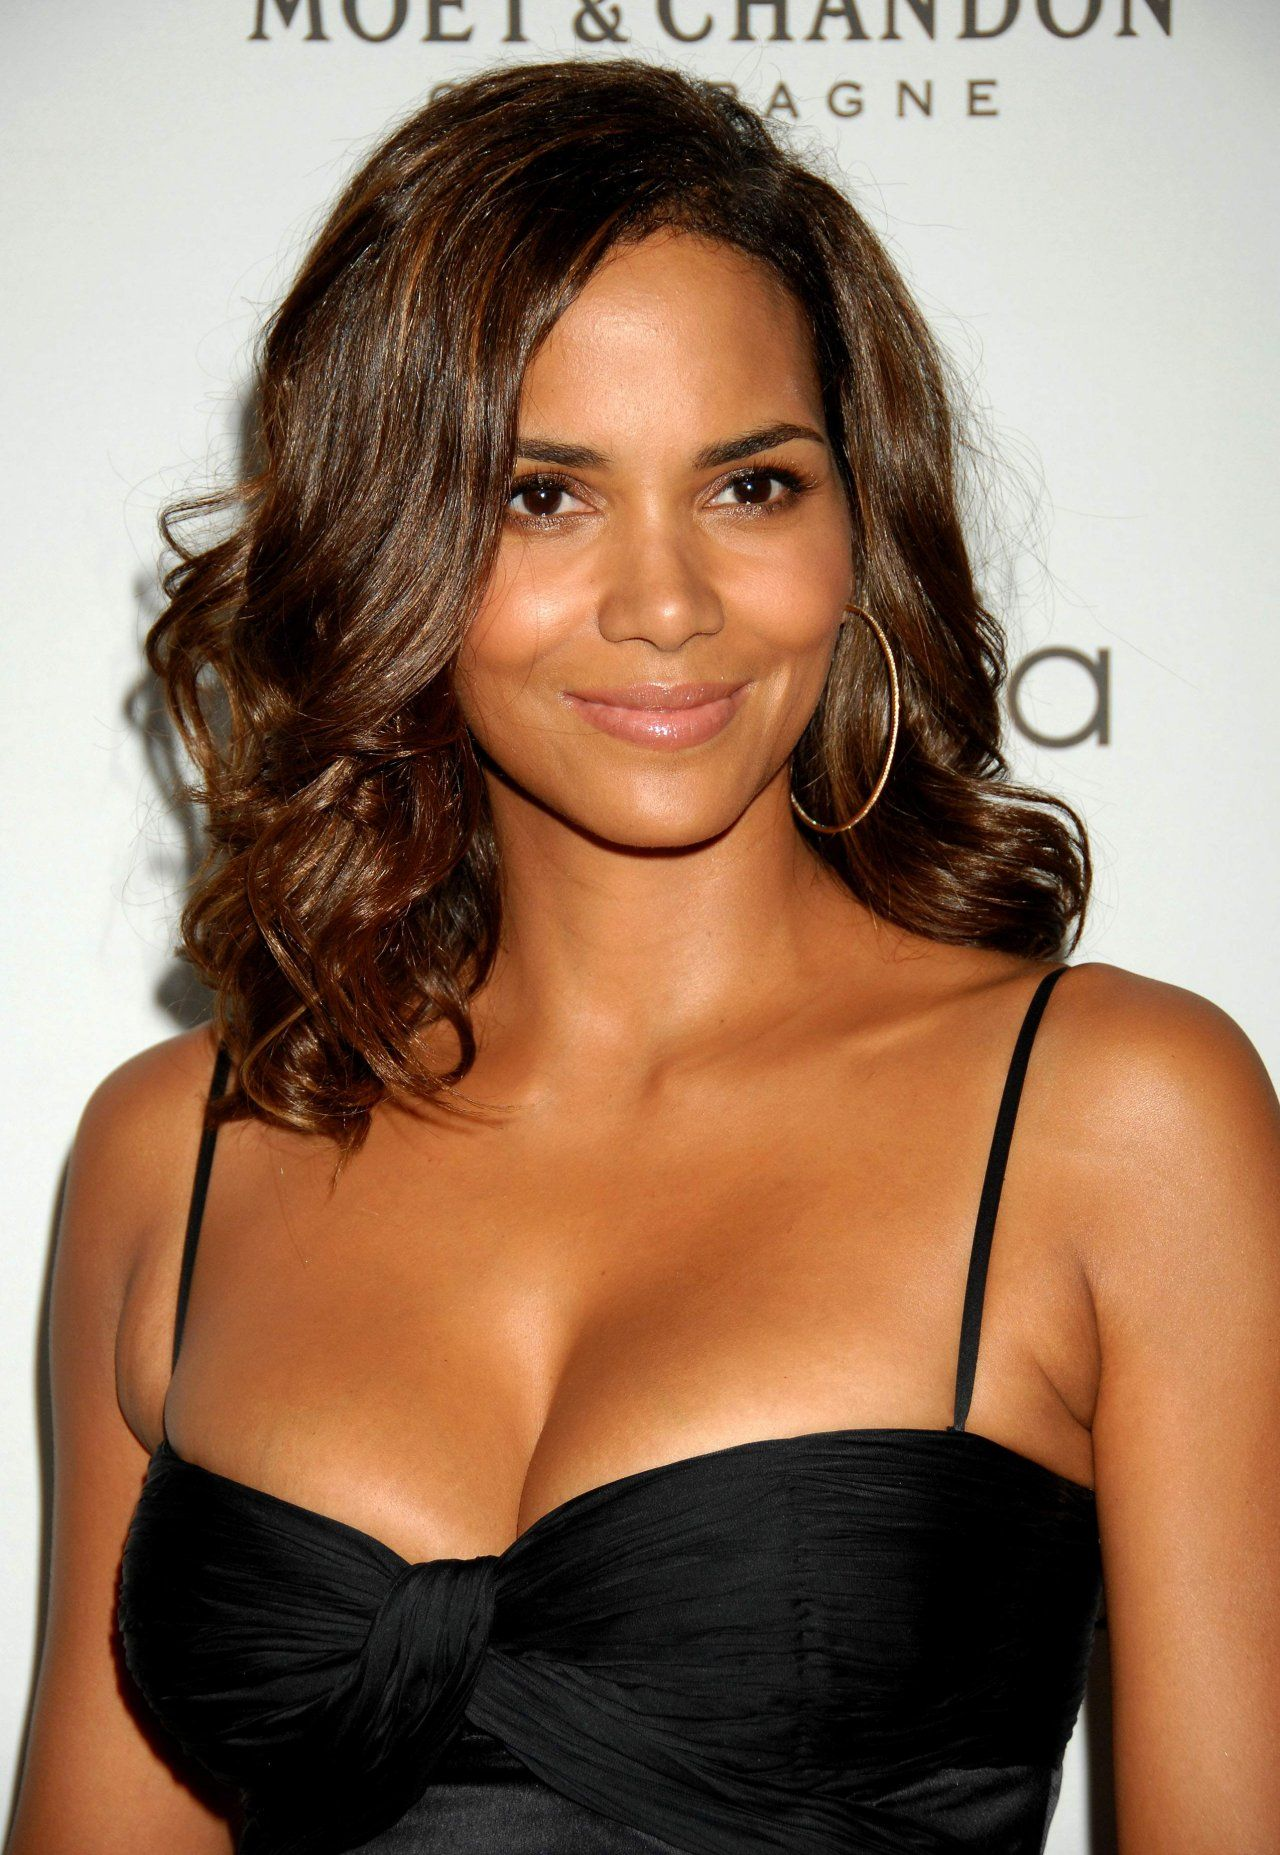 Best 25+ Halle berry movies ideas on Pinterest | Halle ...